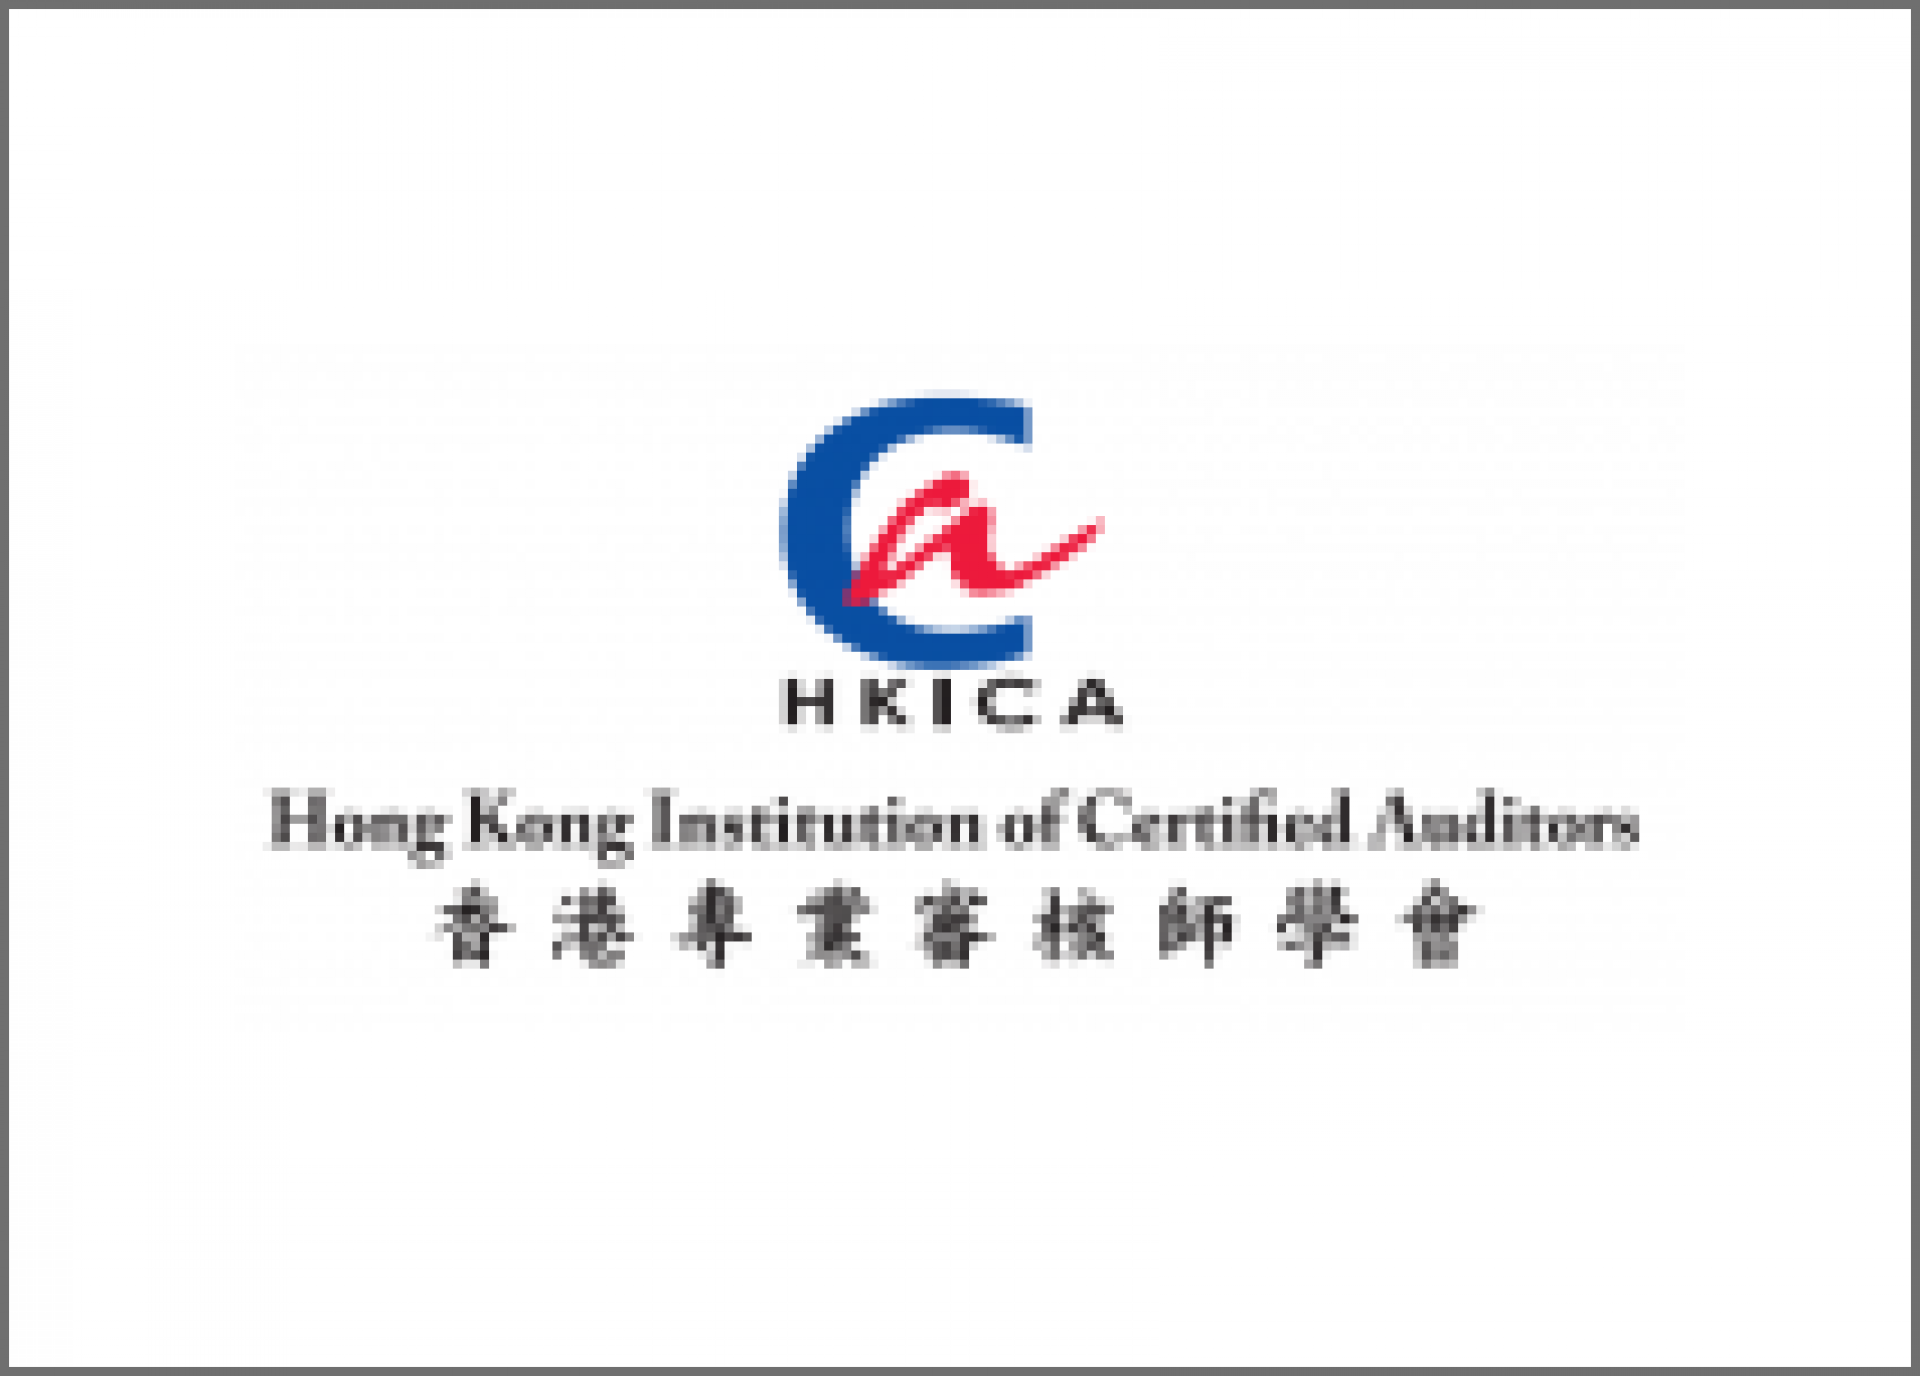 Hong Kong Institution of Certified Auditors Limited